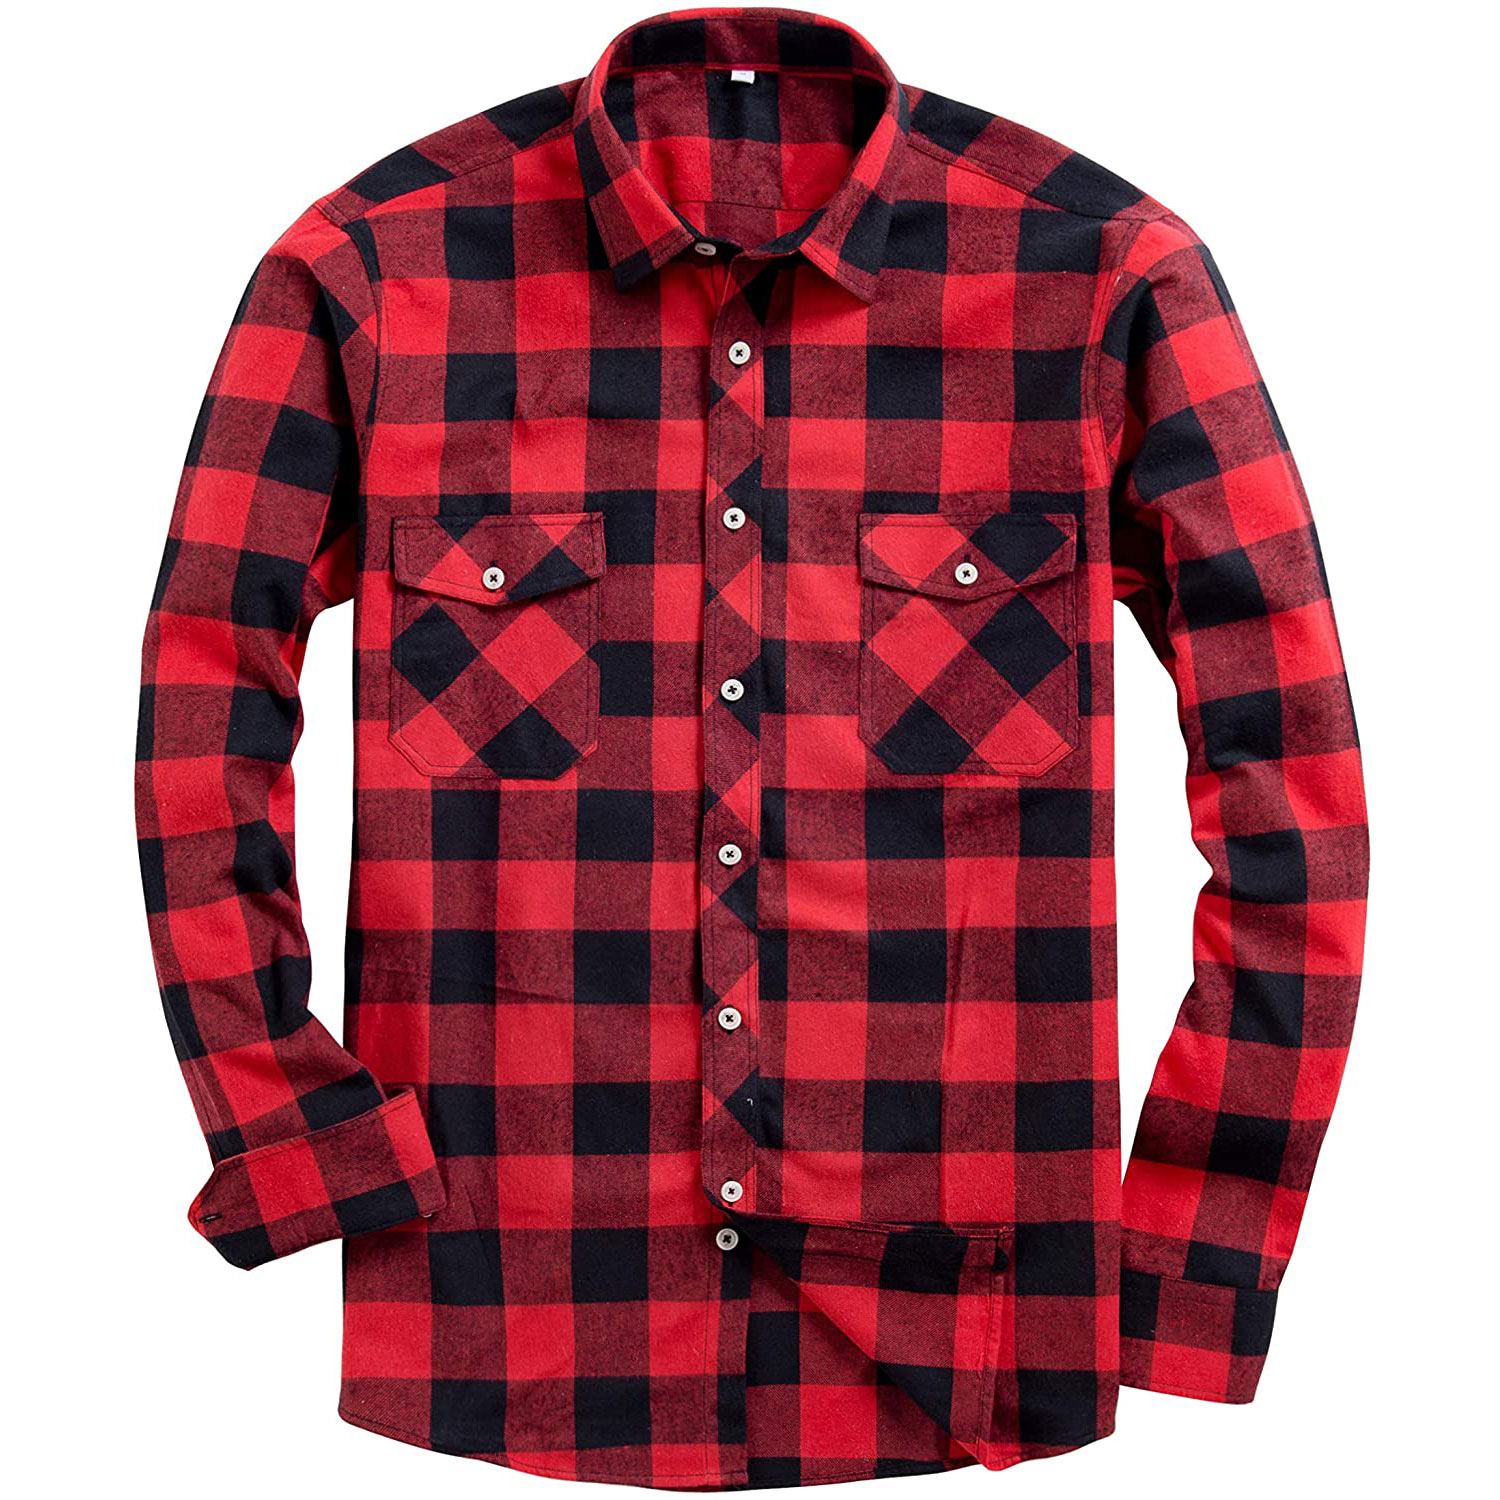 Alimens and Gentle Button Down Flannel Shirt